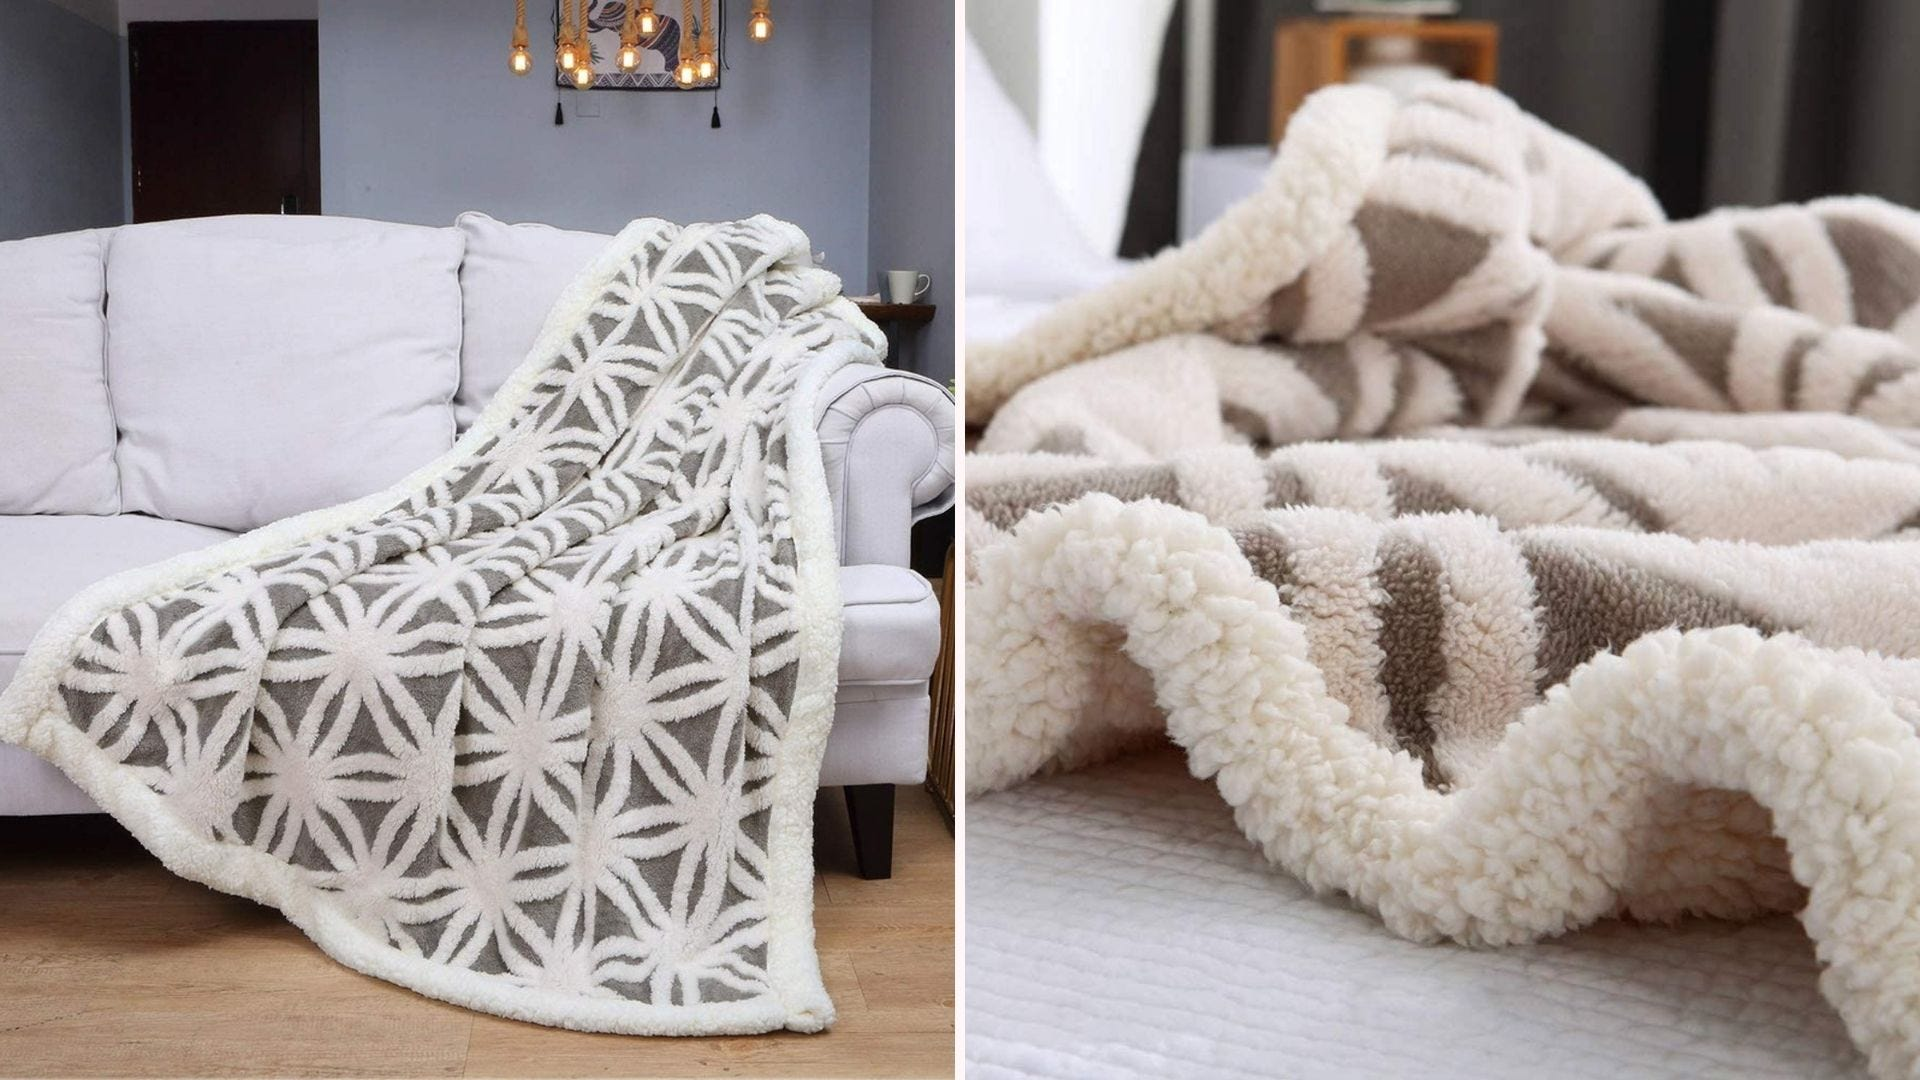 A sherpa blanket throw over a couch with a closeup view of the soft texture.